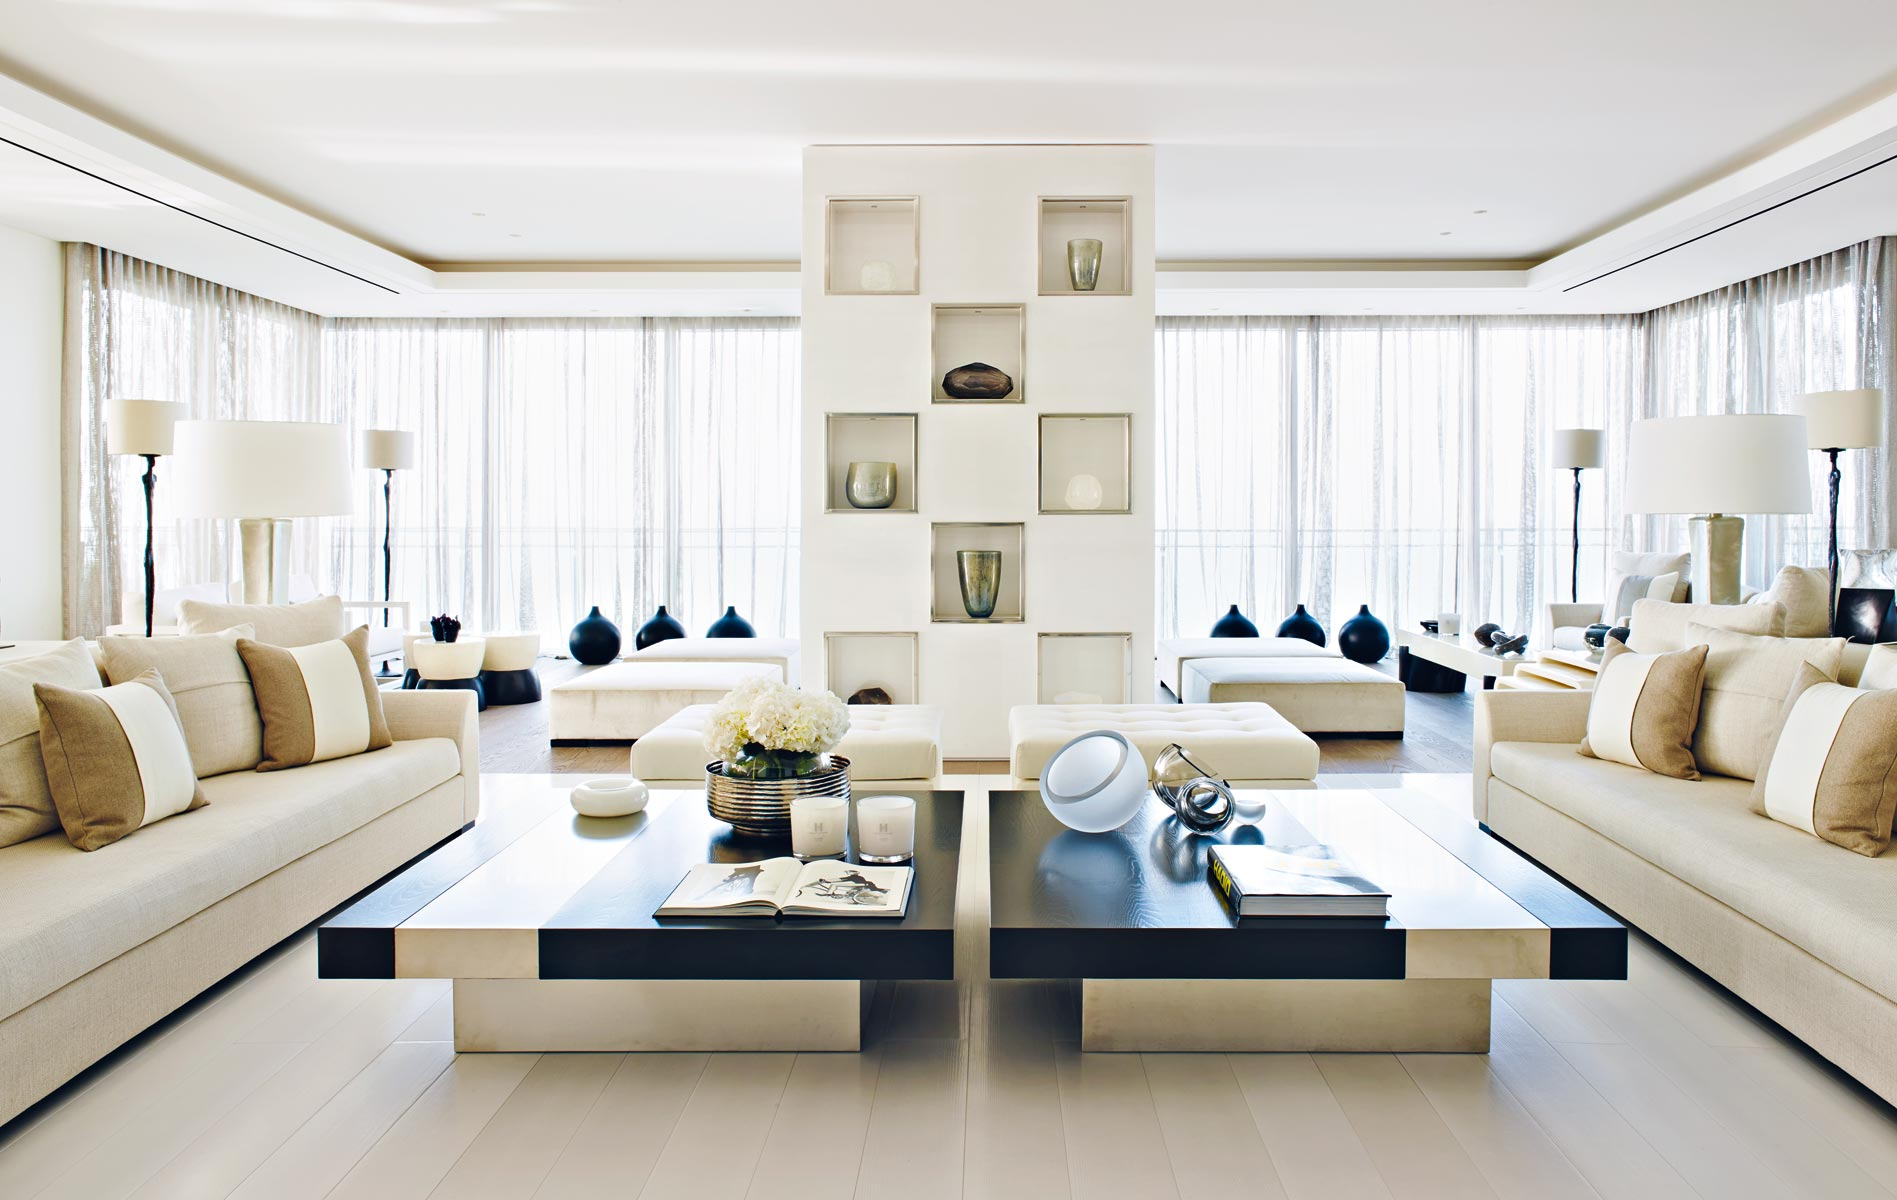 Top 10 kelly hoppen design ideas - Beautiful rooms ...